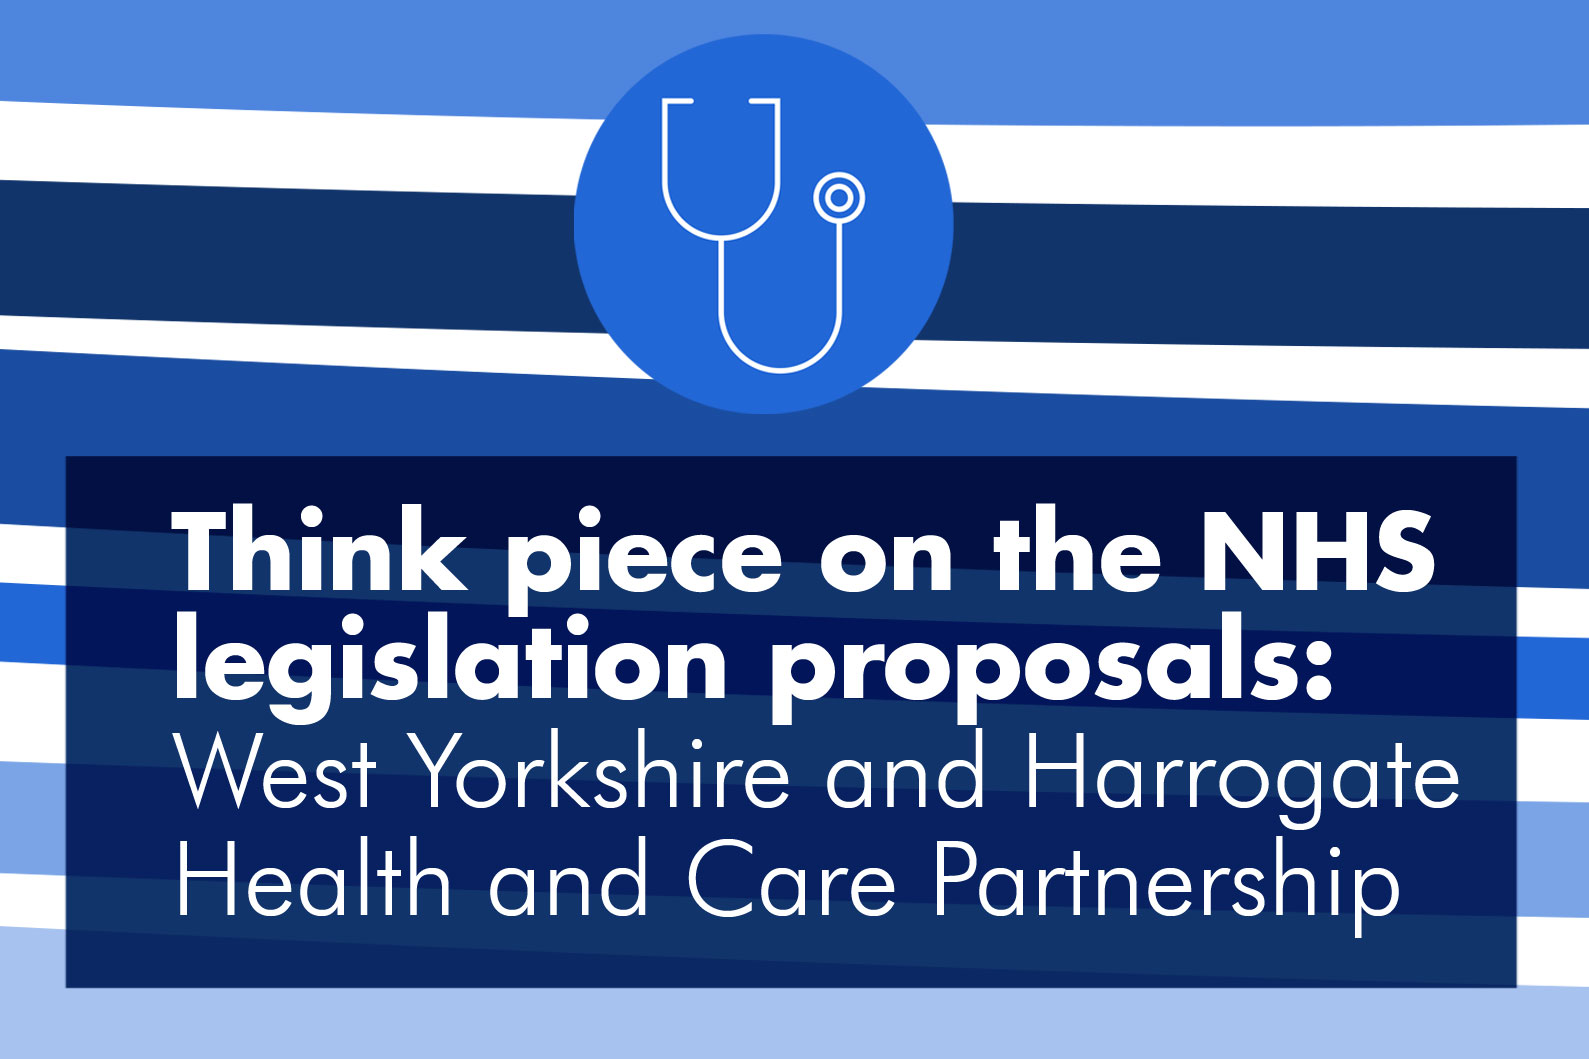 A think piece on the NHS legislation proposals from the West Yorkshire and Harrogate Health and Care Partnership